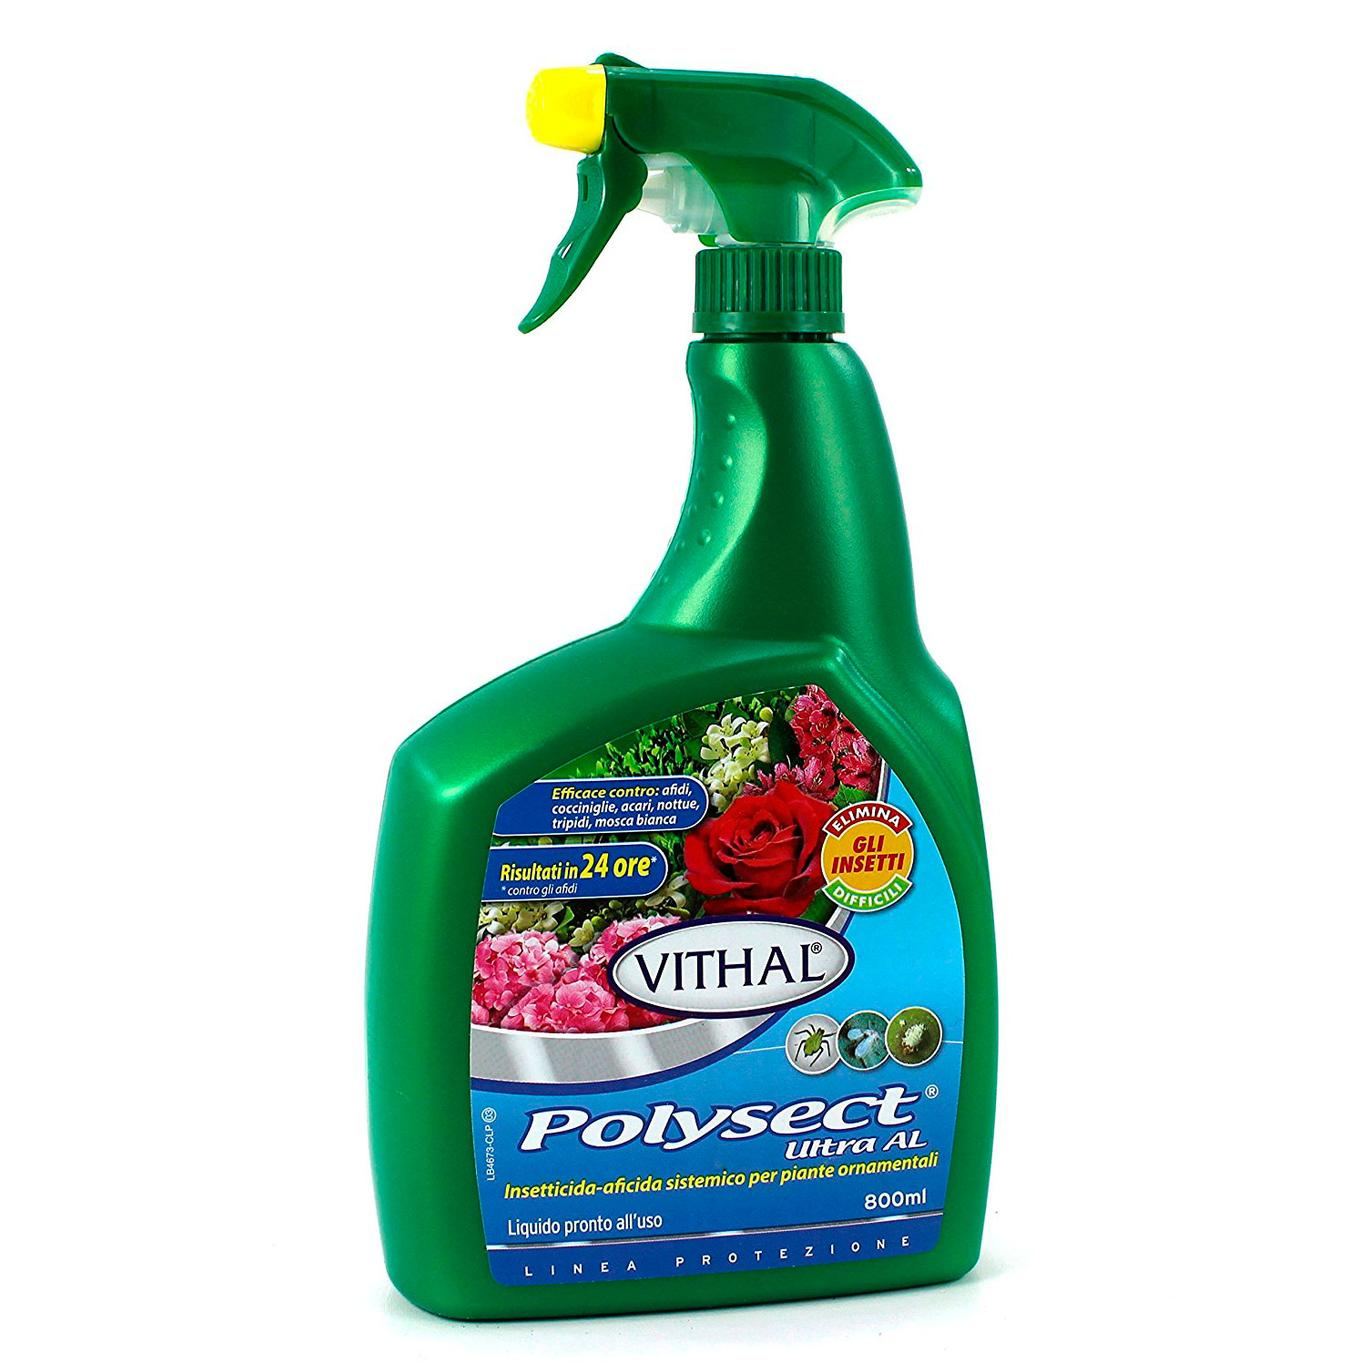 Polysect Ultra AL PFnPO Insetticida sistemico pronto all'uso 800ml